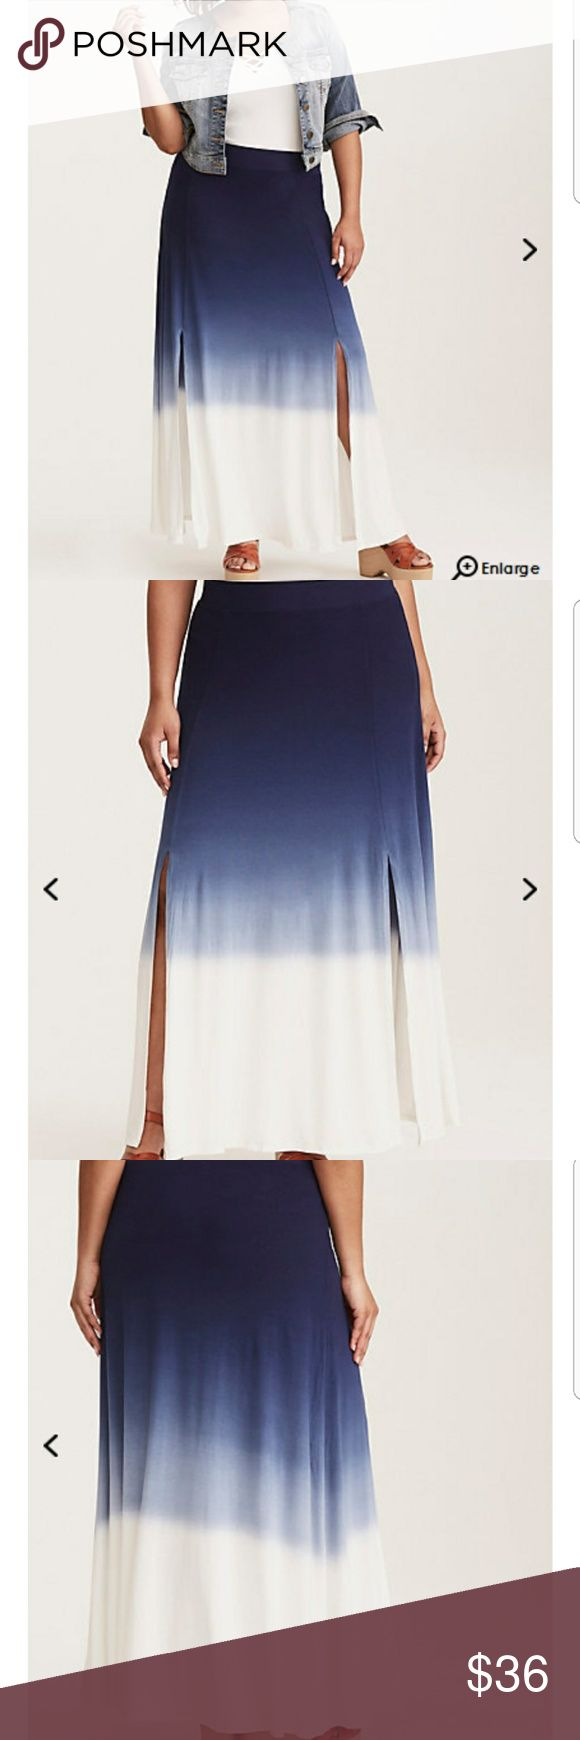 """Dip Dye Slit Jersey Maxi Skirt Book that flight; this maxi skirt isdemandinga vacation (you should always listen to your skirts). The whisper-light jersey knit is relaxed already, but the navy-to-white dip dye effect is basically the definition of """"and chill."""" A tummy-smoothing waistband flatters, with side slits that let your legs say hi to the sunshine. torrid Skirts Maxi"""